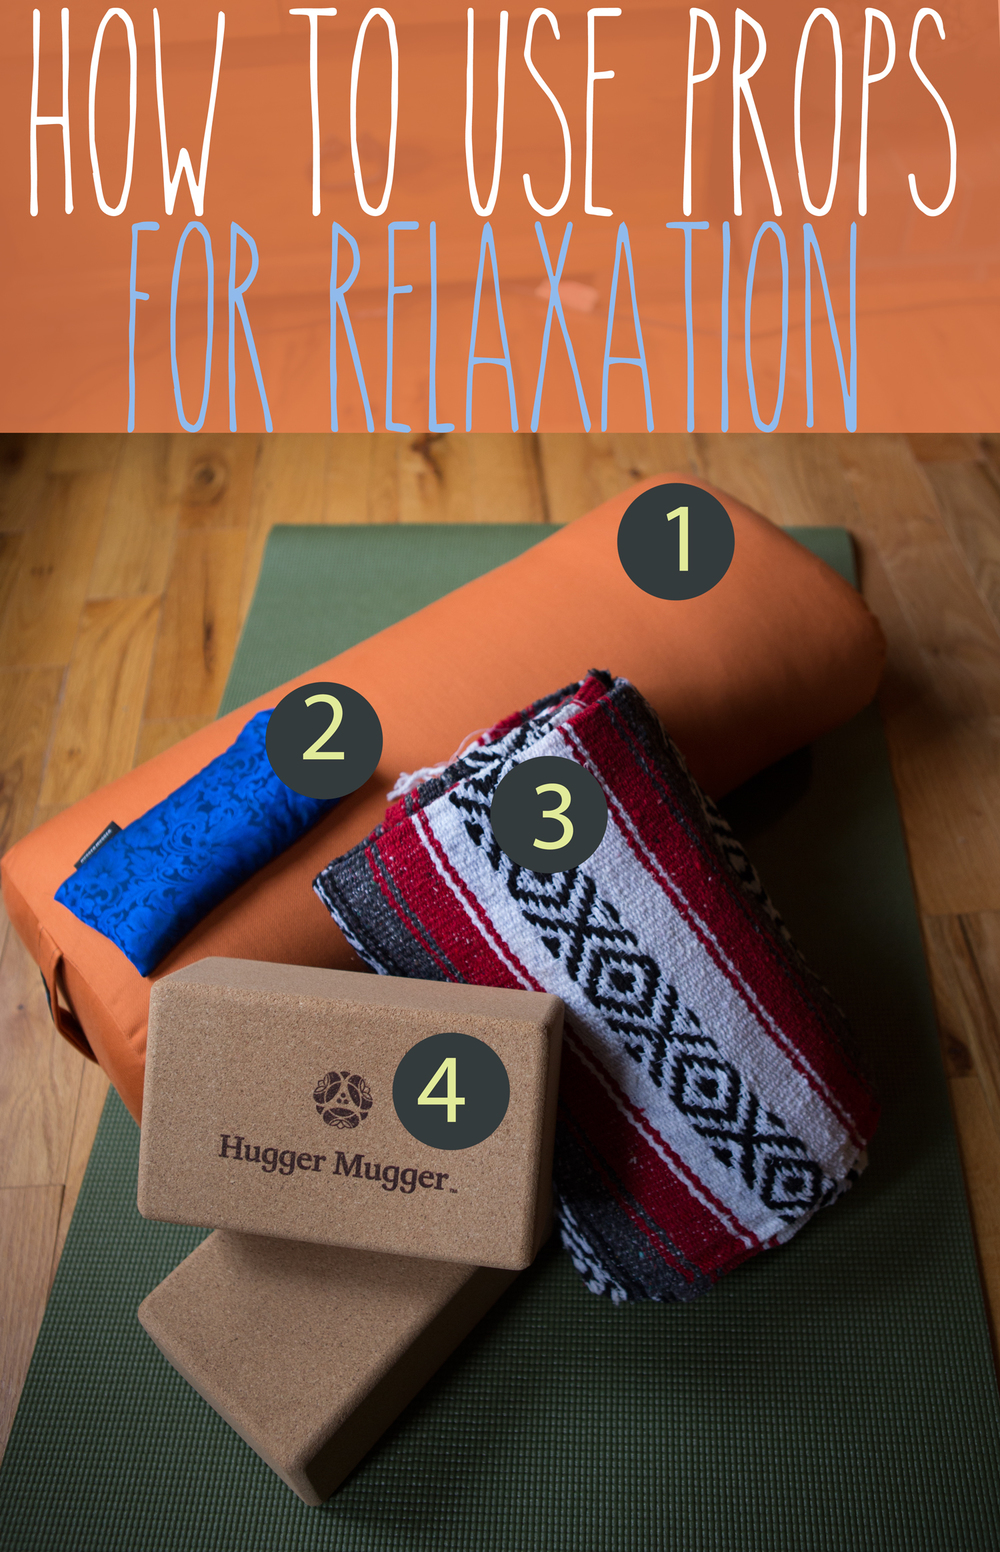 1. bolster, 2. eye pillow, 3. Mexican blanket, 4. cork yoga blocks